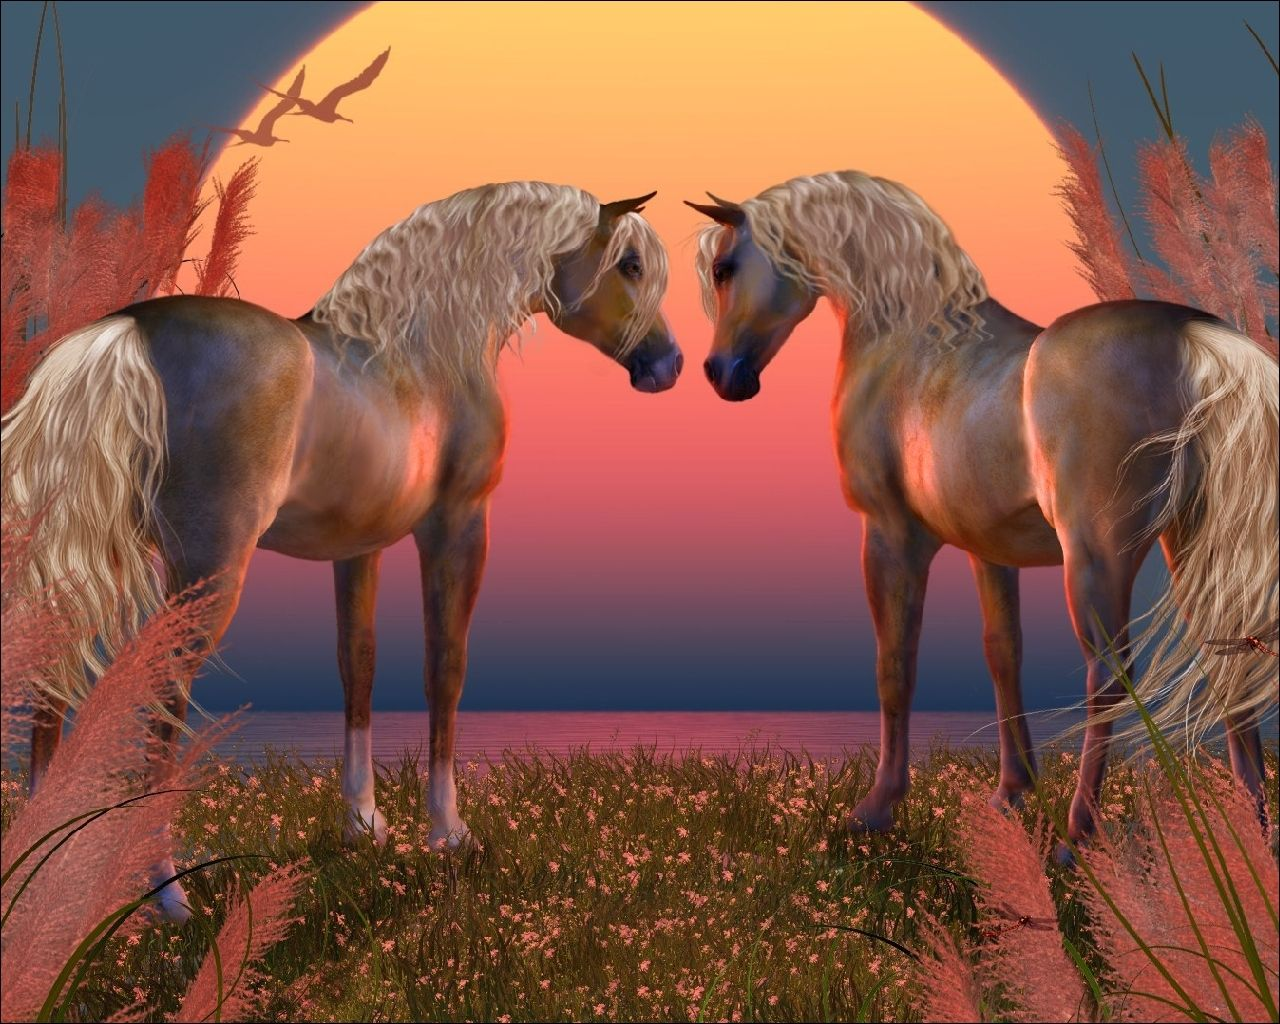 Cool Wallpaper Horse Couple - daf10c38fd01992aa37ffc7905bd9cd3  Photograph_14367.jpg